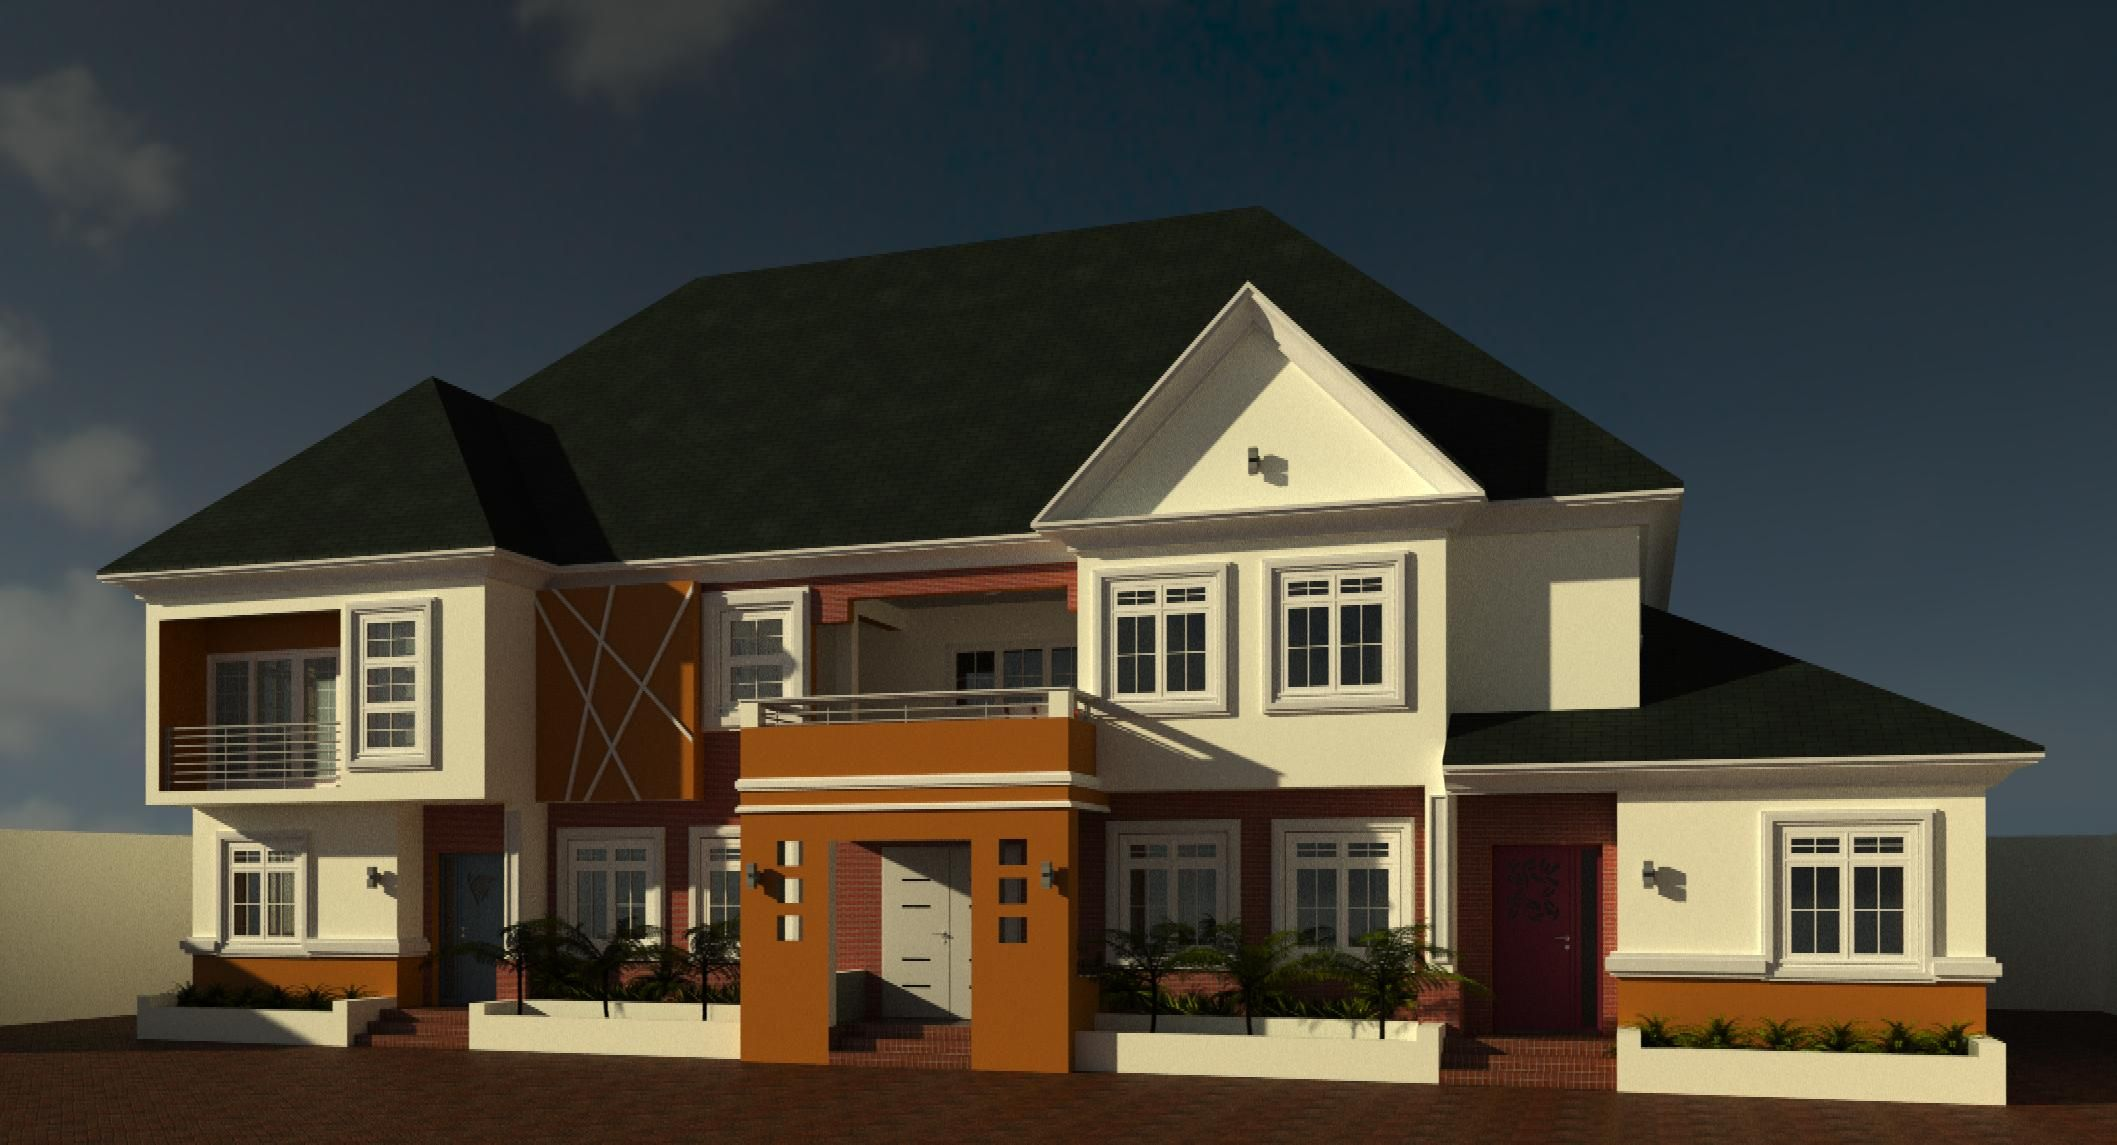 A simple twobedroom semidetached bungalow below, and a